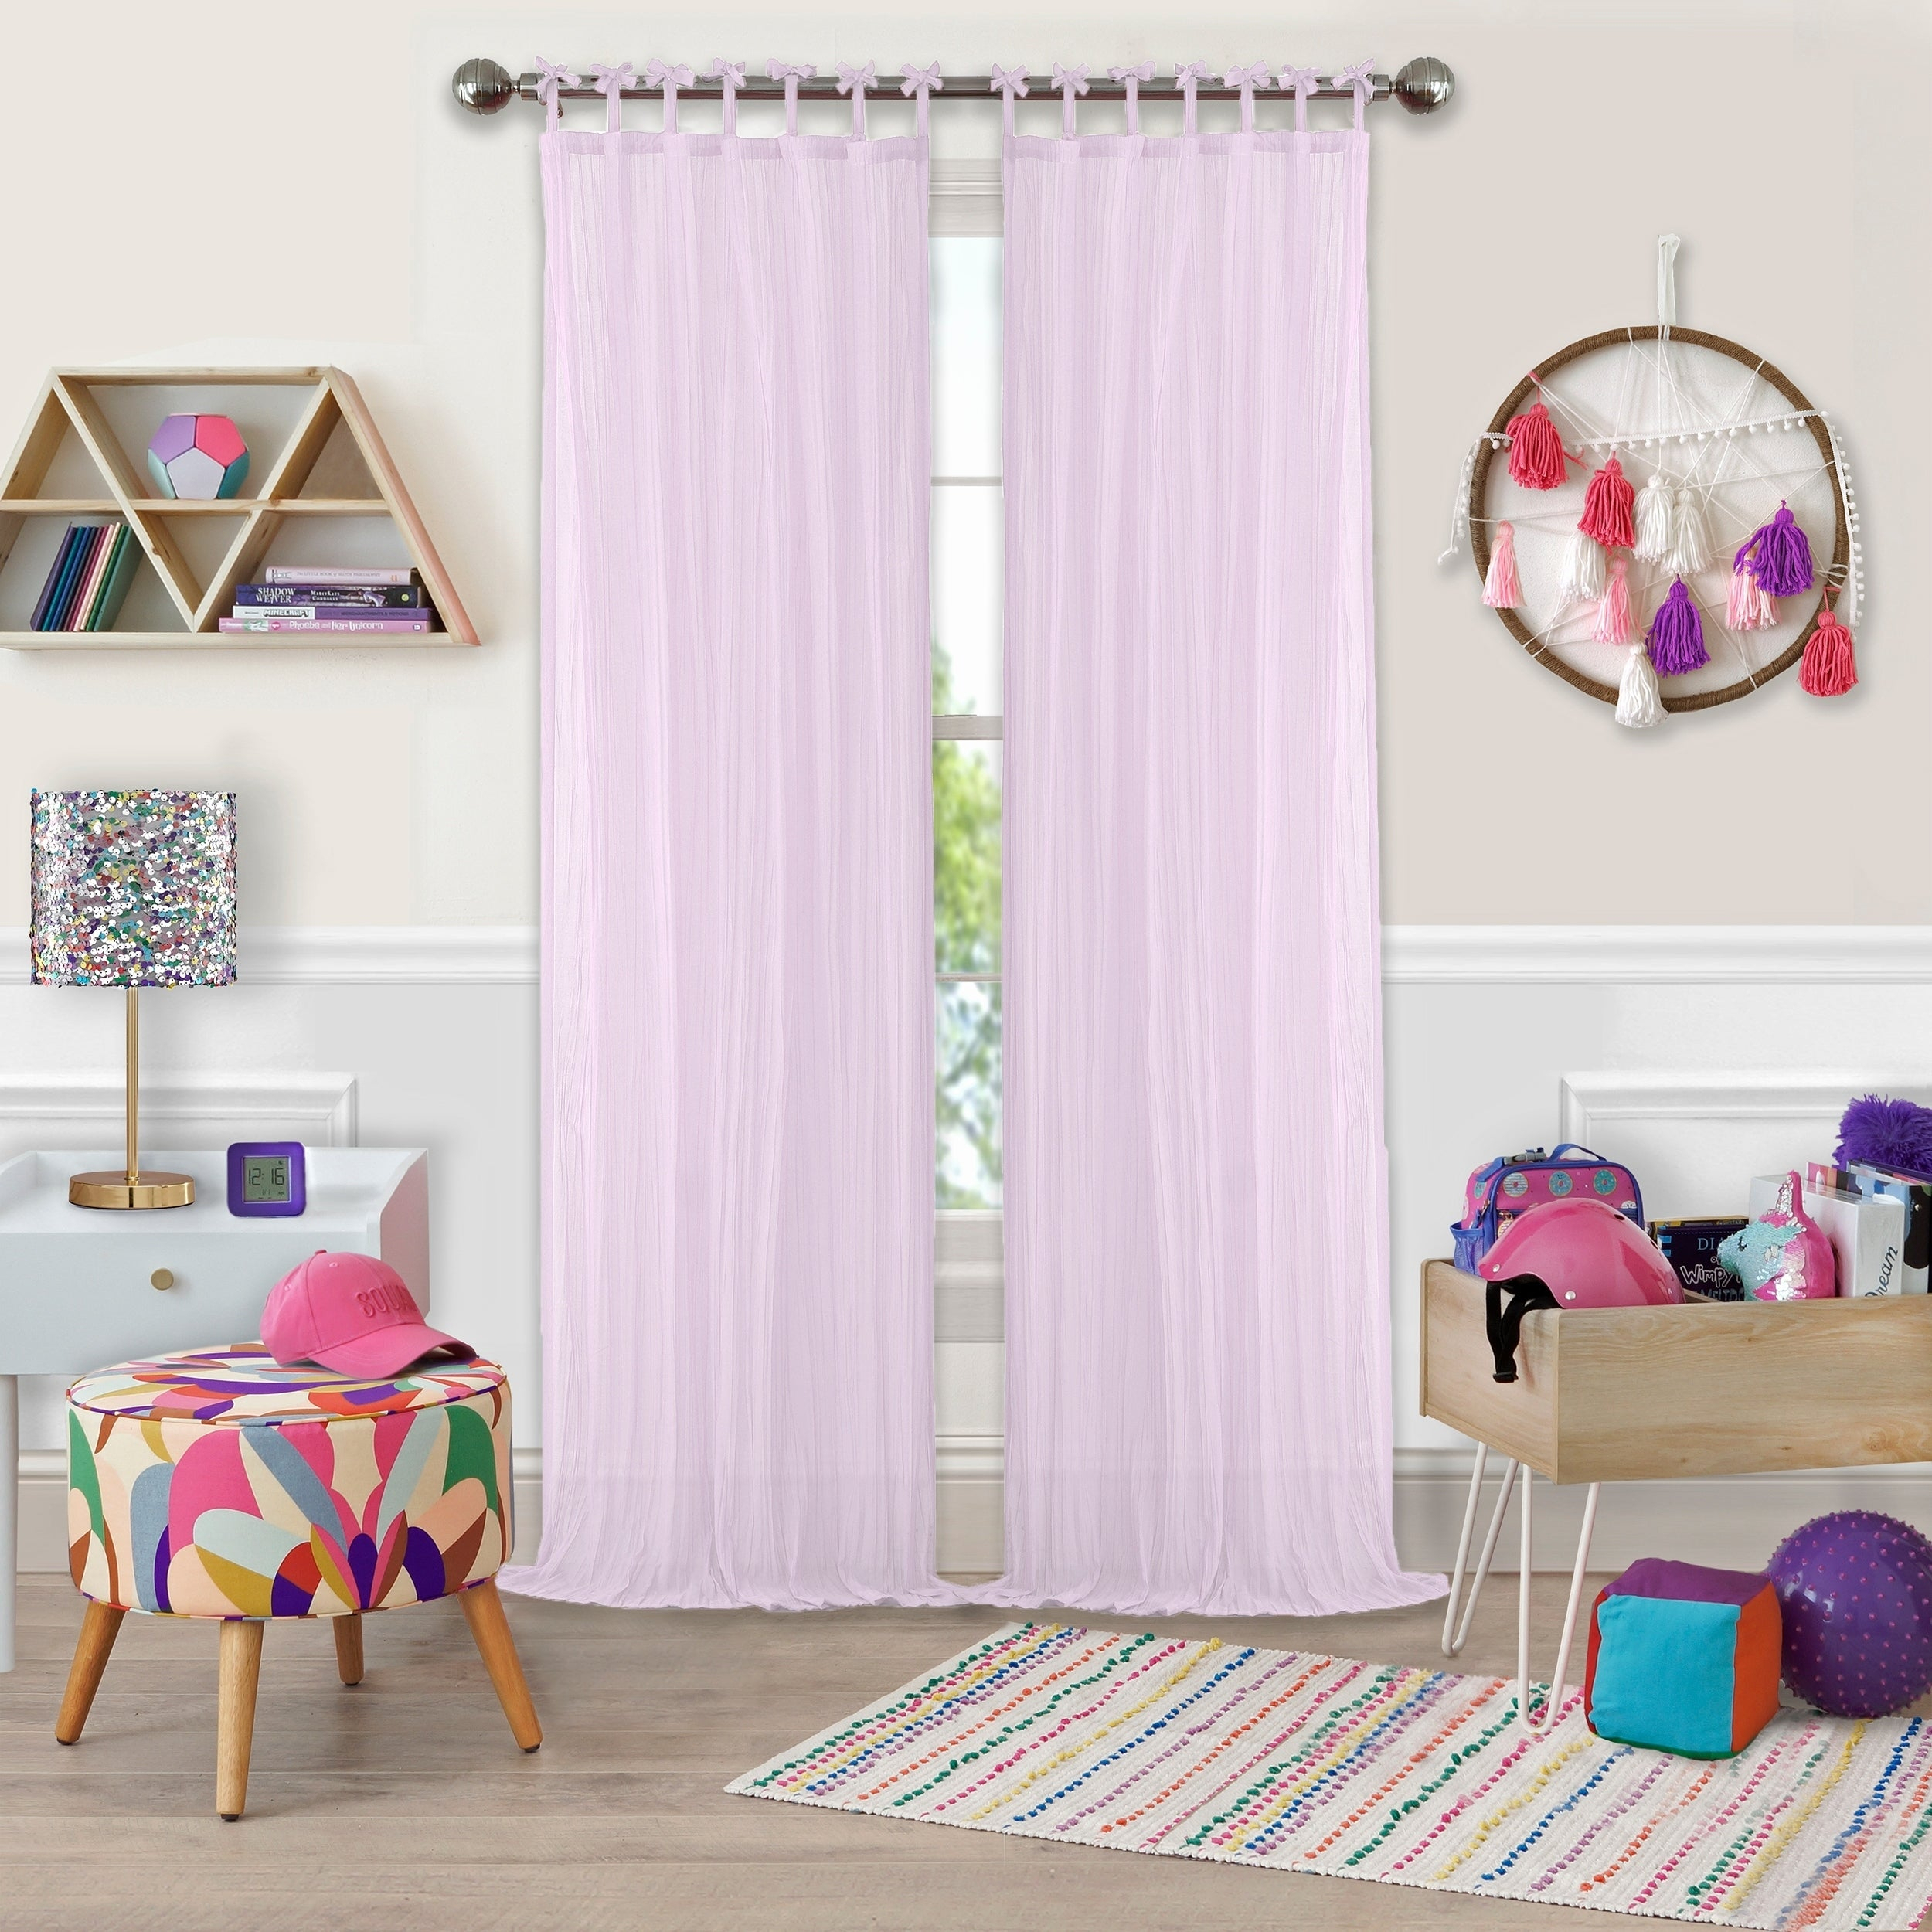 Elrene Greta Kid's Tab Top Sheer Window Curtain Panel For Elrene Aurora Kids Room Darkening Layered Sheer Curtains (View 10 of 20)